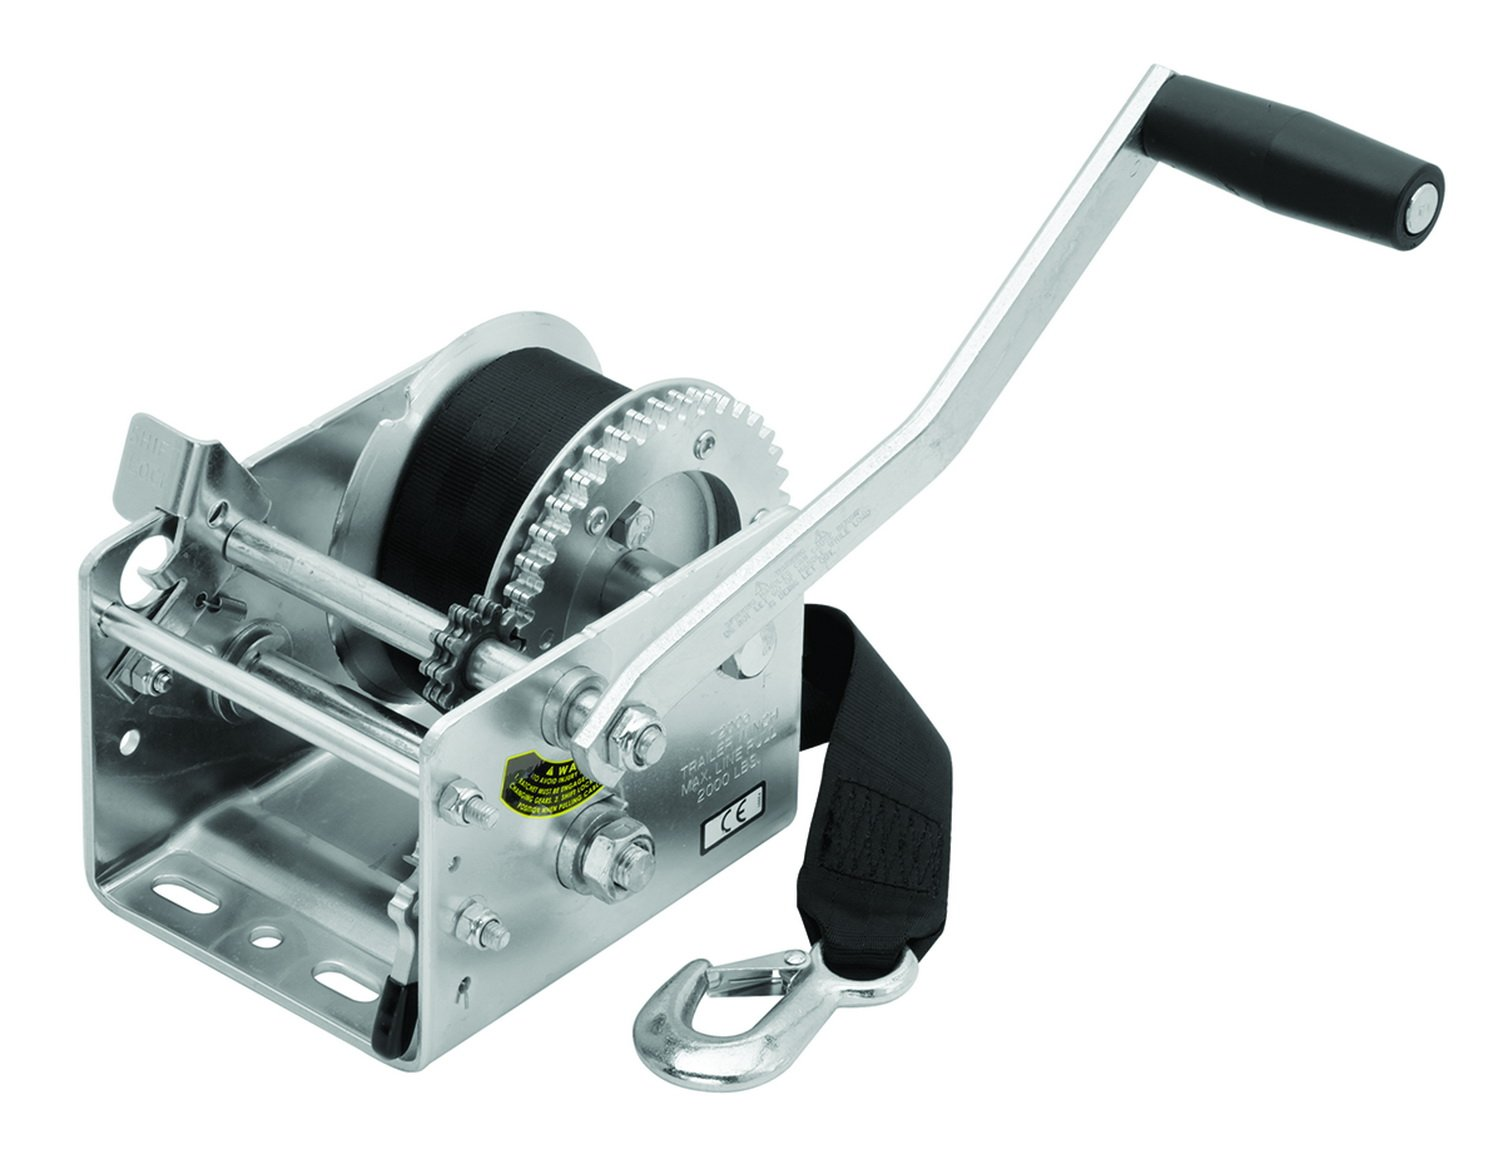 Fulton Trailer Winch, 2-Speed with 20-Feet Strap, Holds up to 2000-Pound by Fulton